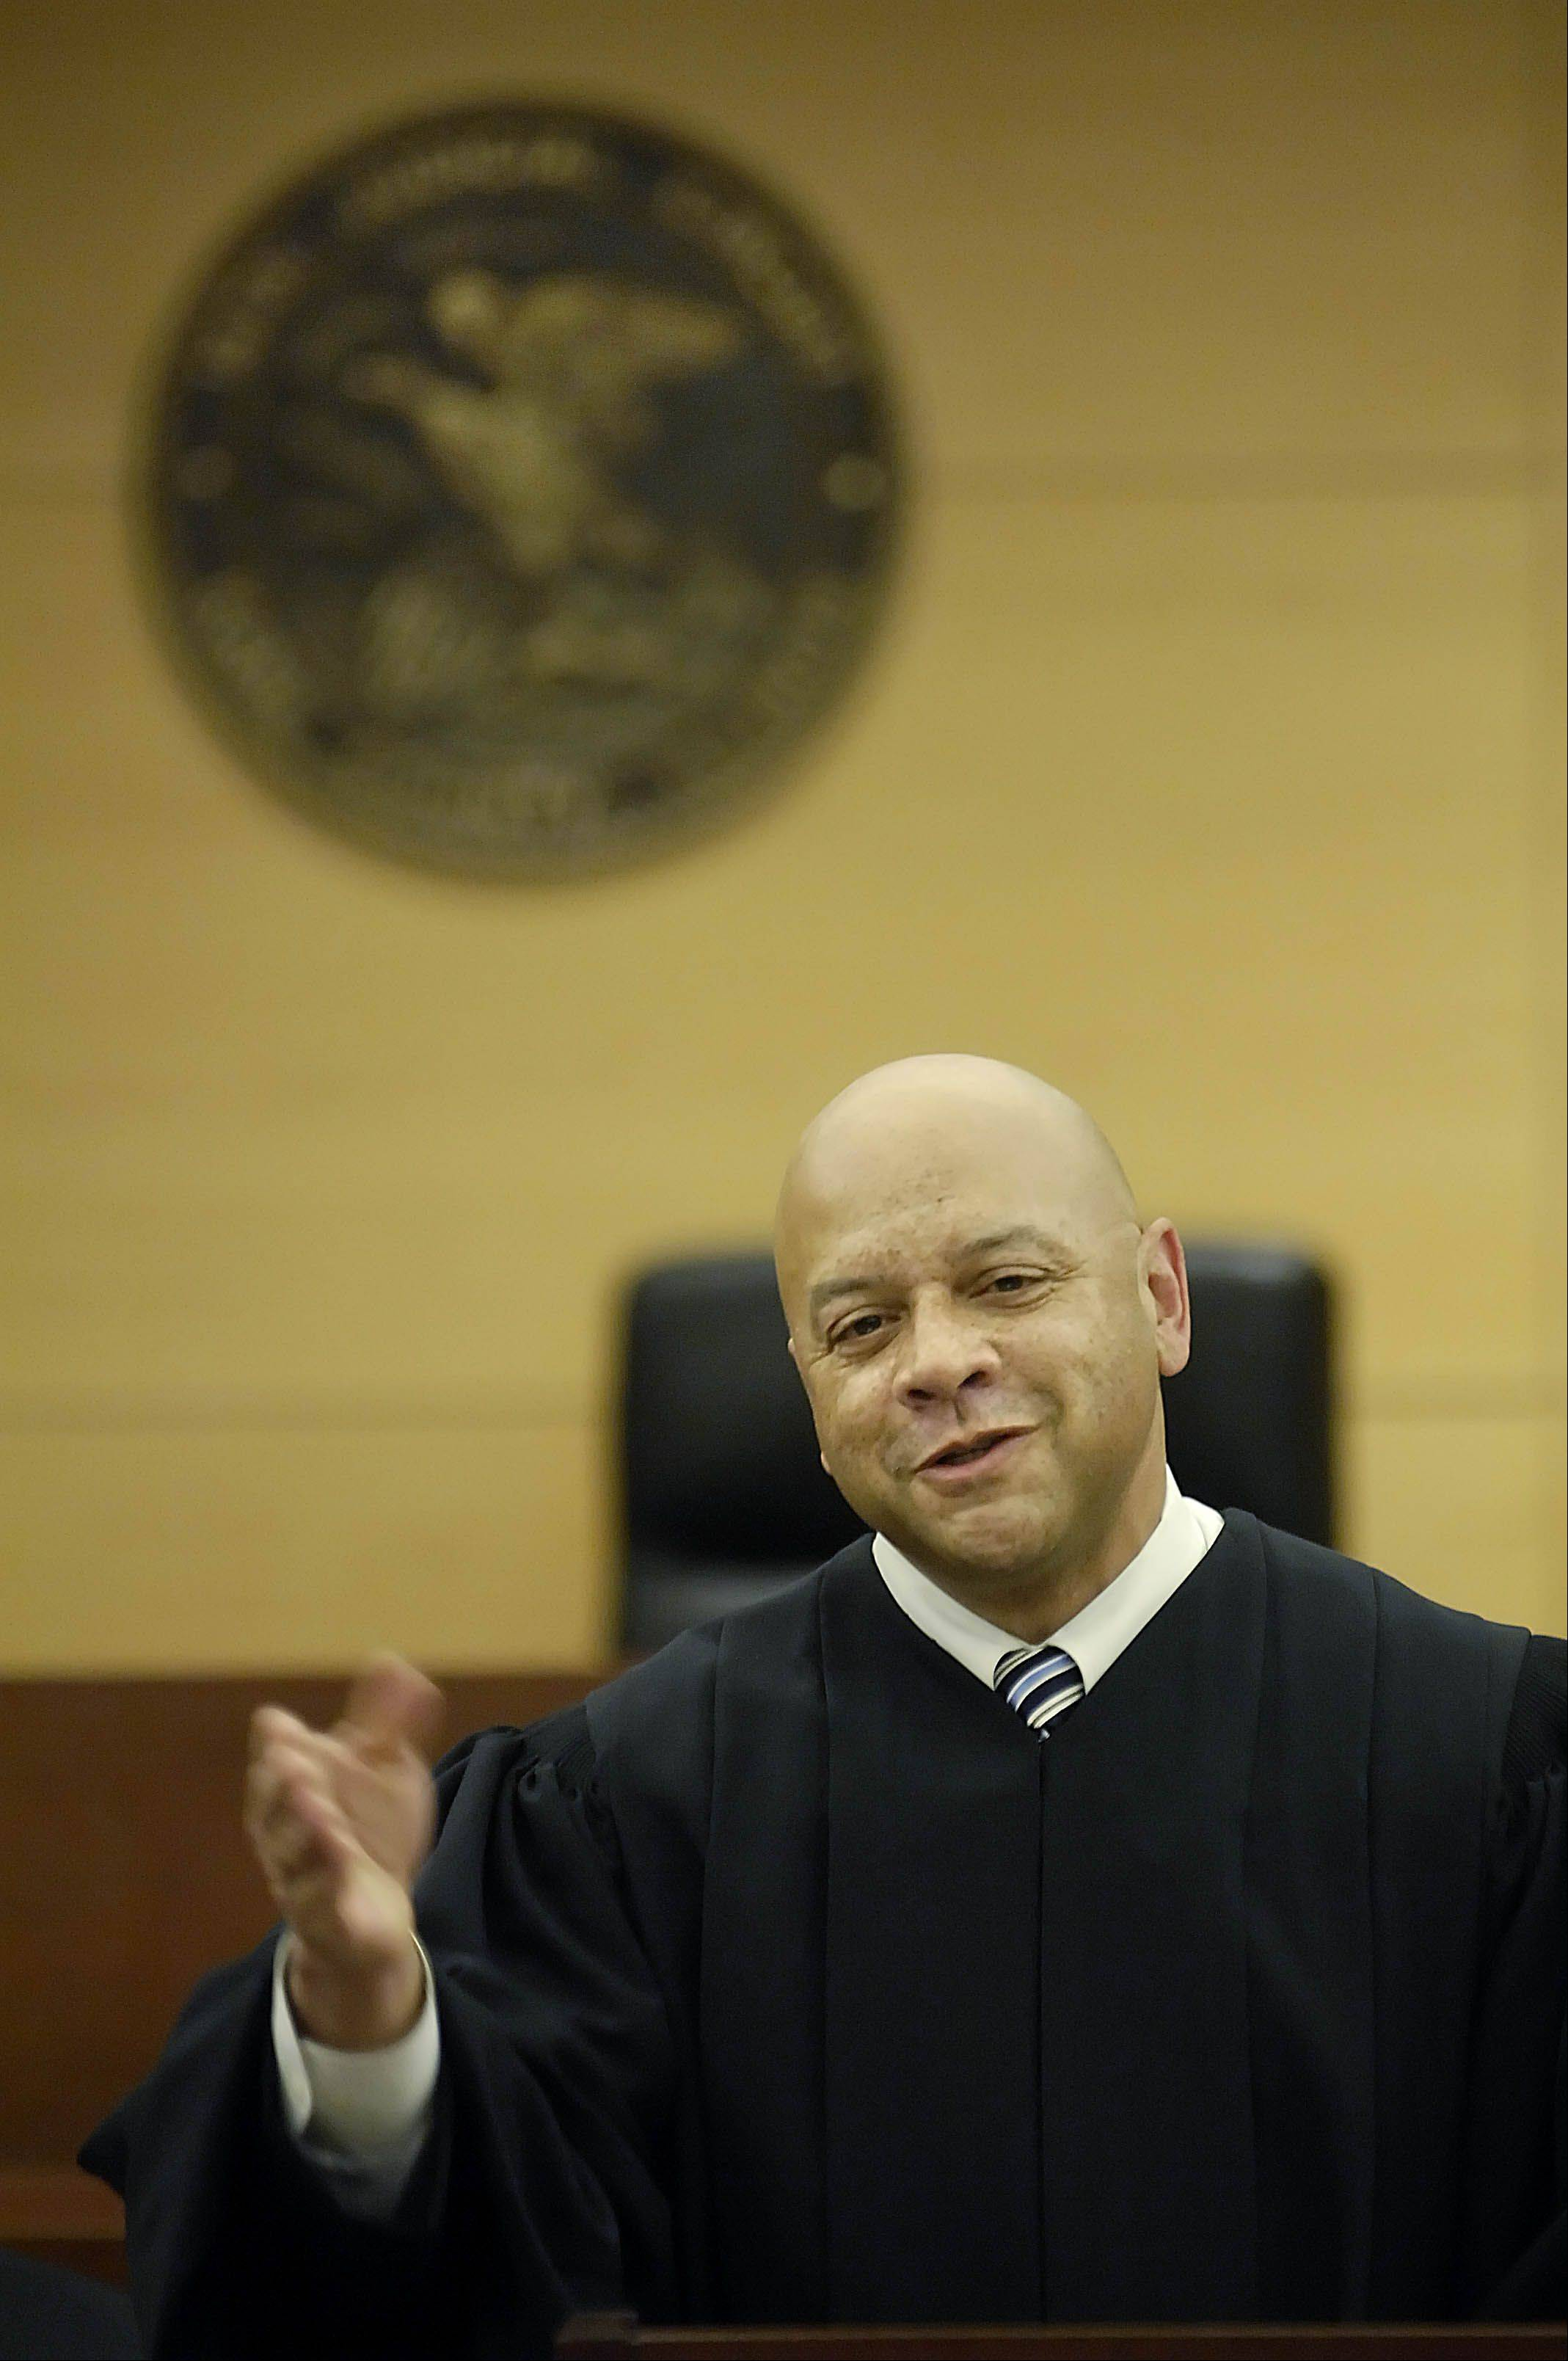 JOHN STARKS/jstarks@dailyherald.com Kane County Circuit Judge F. Keith Brown will be recognized at Thursday's eighth annual African-American Heritage Advisory Board Celebration in Aurora.